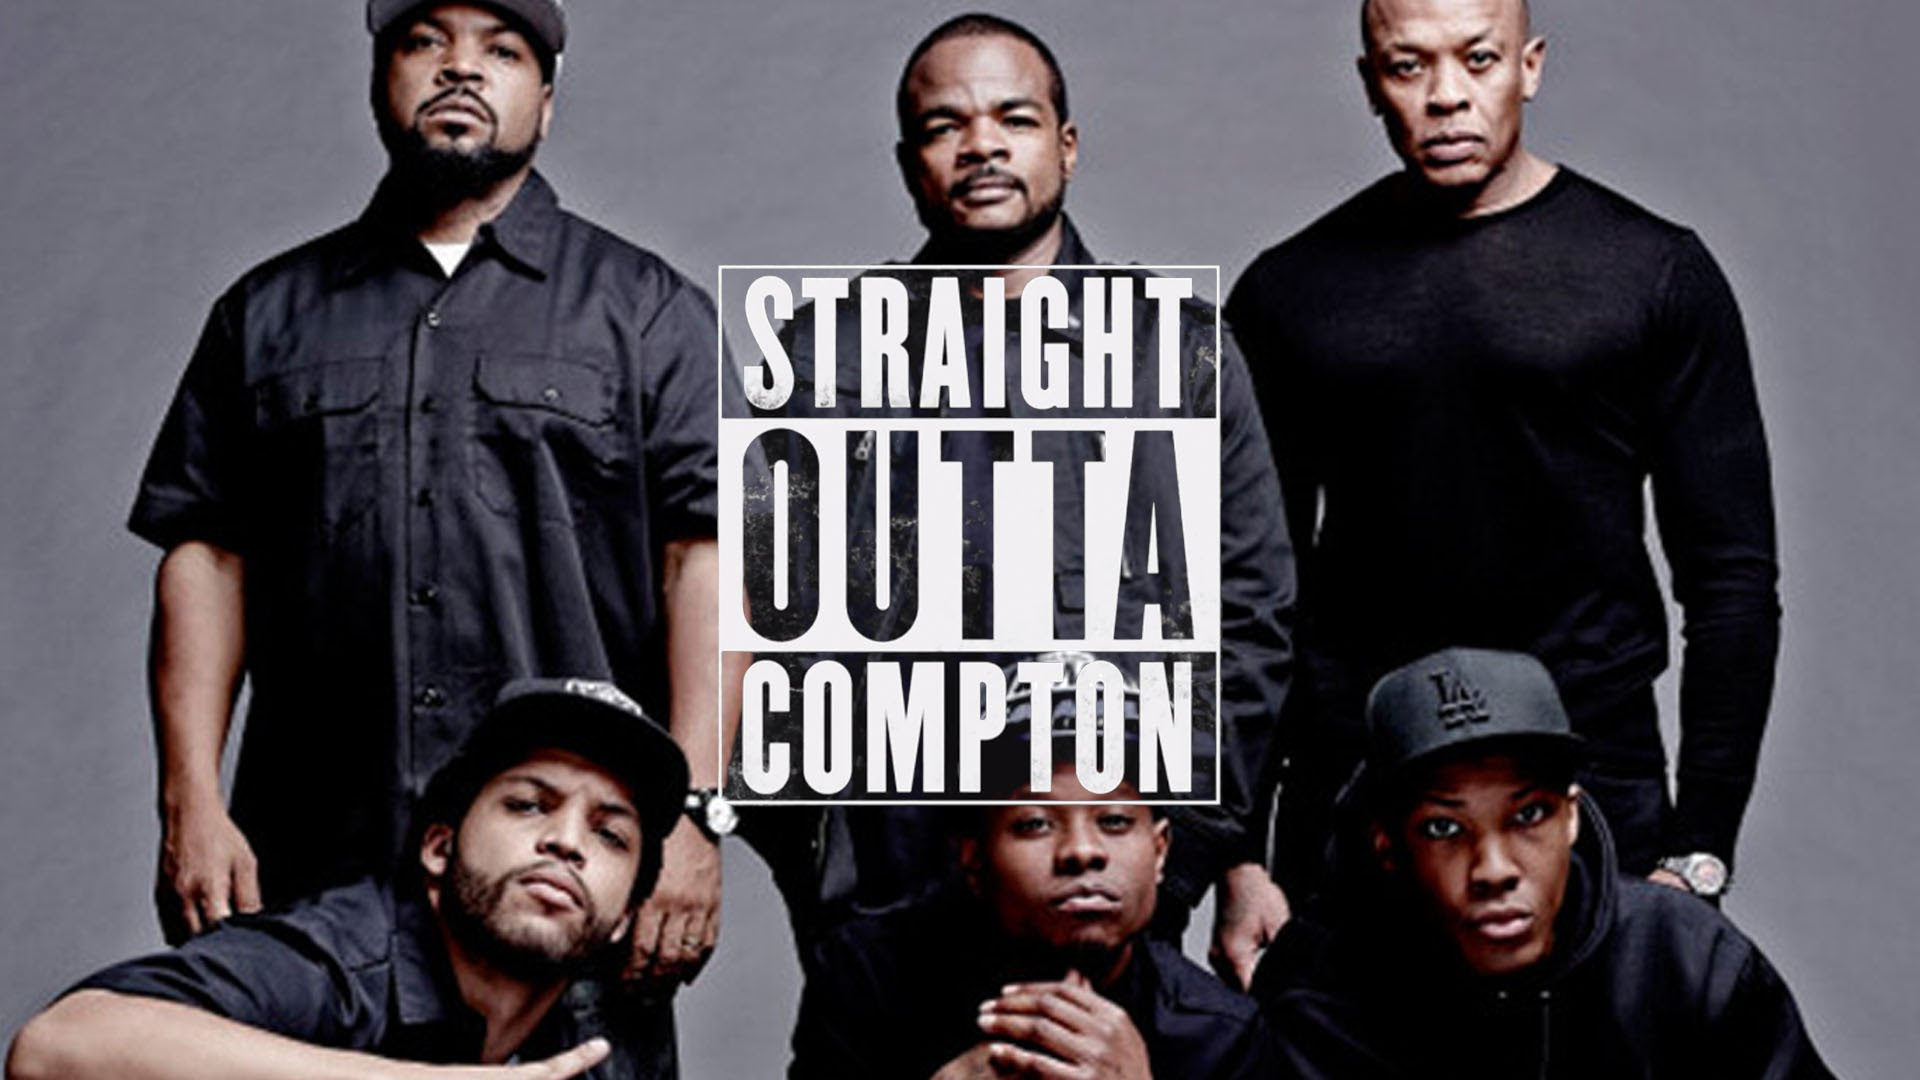 Photo of Recenzija filma STRAIGHT OUTTA COMPTON: Neznanjem do predrasuda